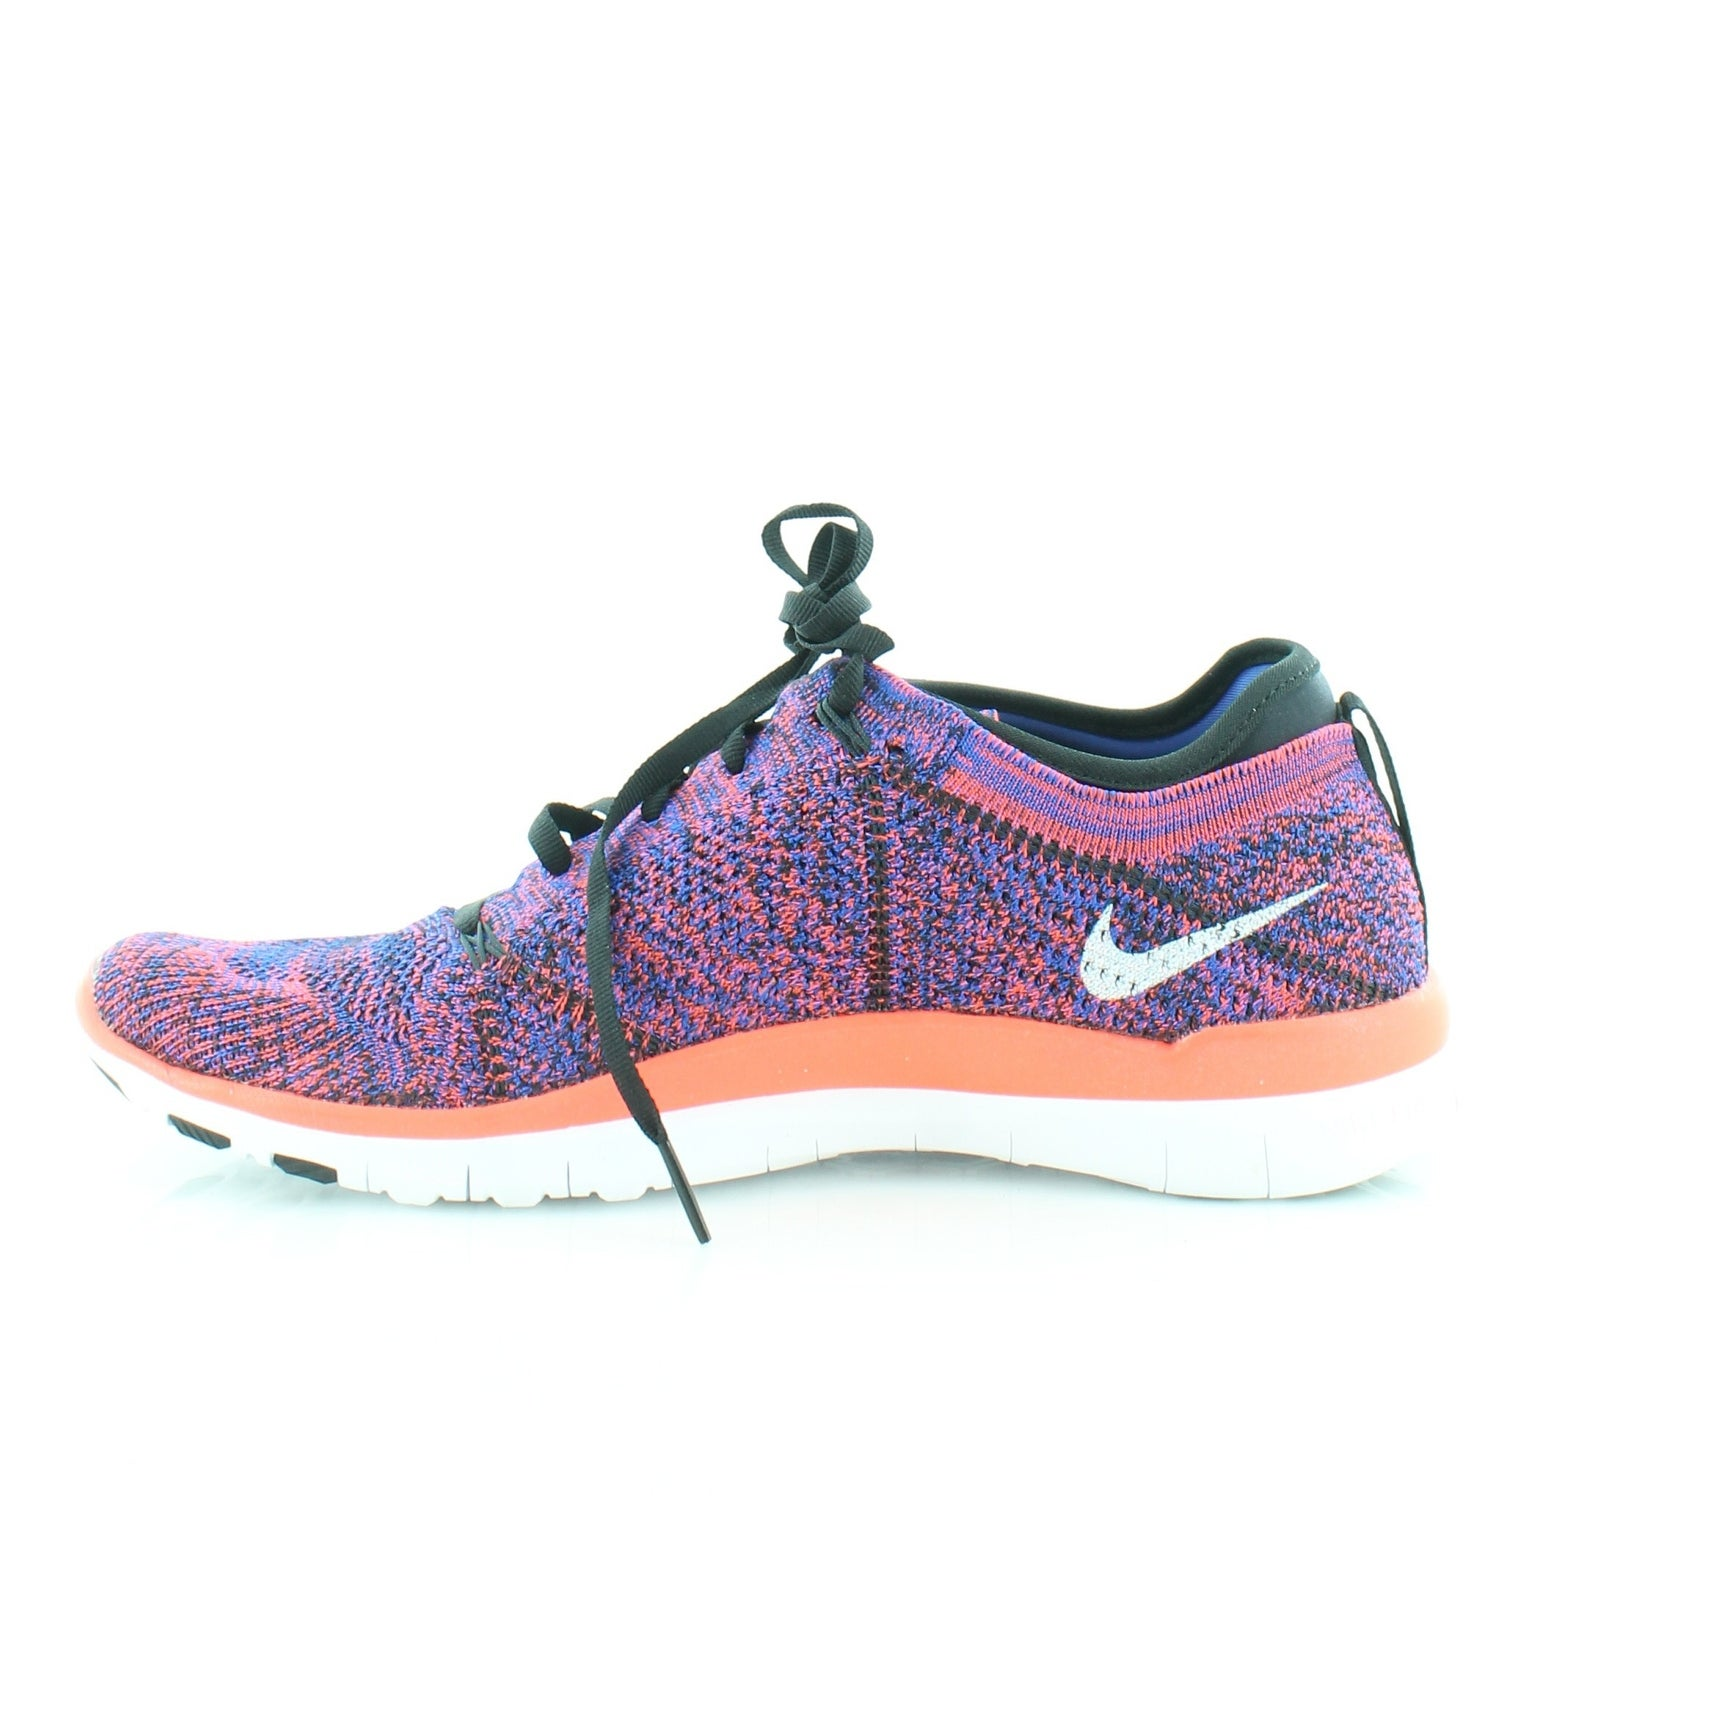 4629a6632f86f Shop Nike Free 4.0 Flyknit Women s Athletic Black White RCR Bl-Bright  Crimson - Free Shipping Today - Overstock - 21553711